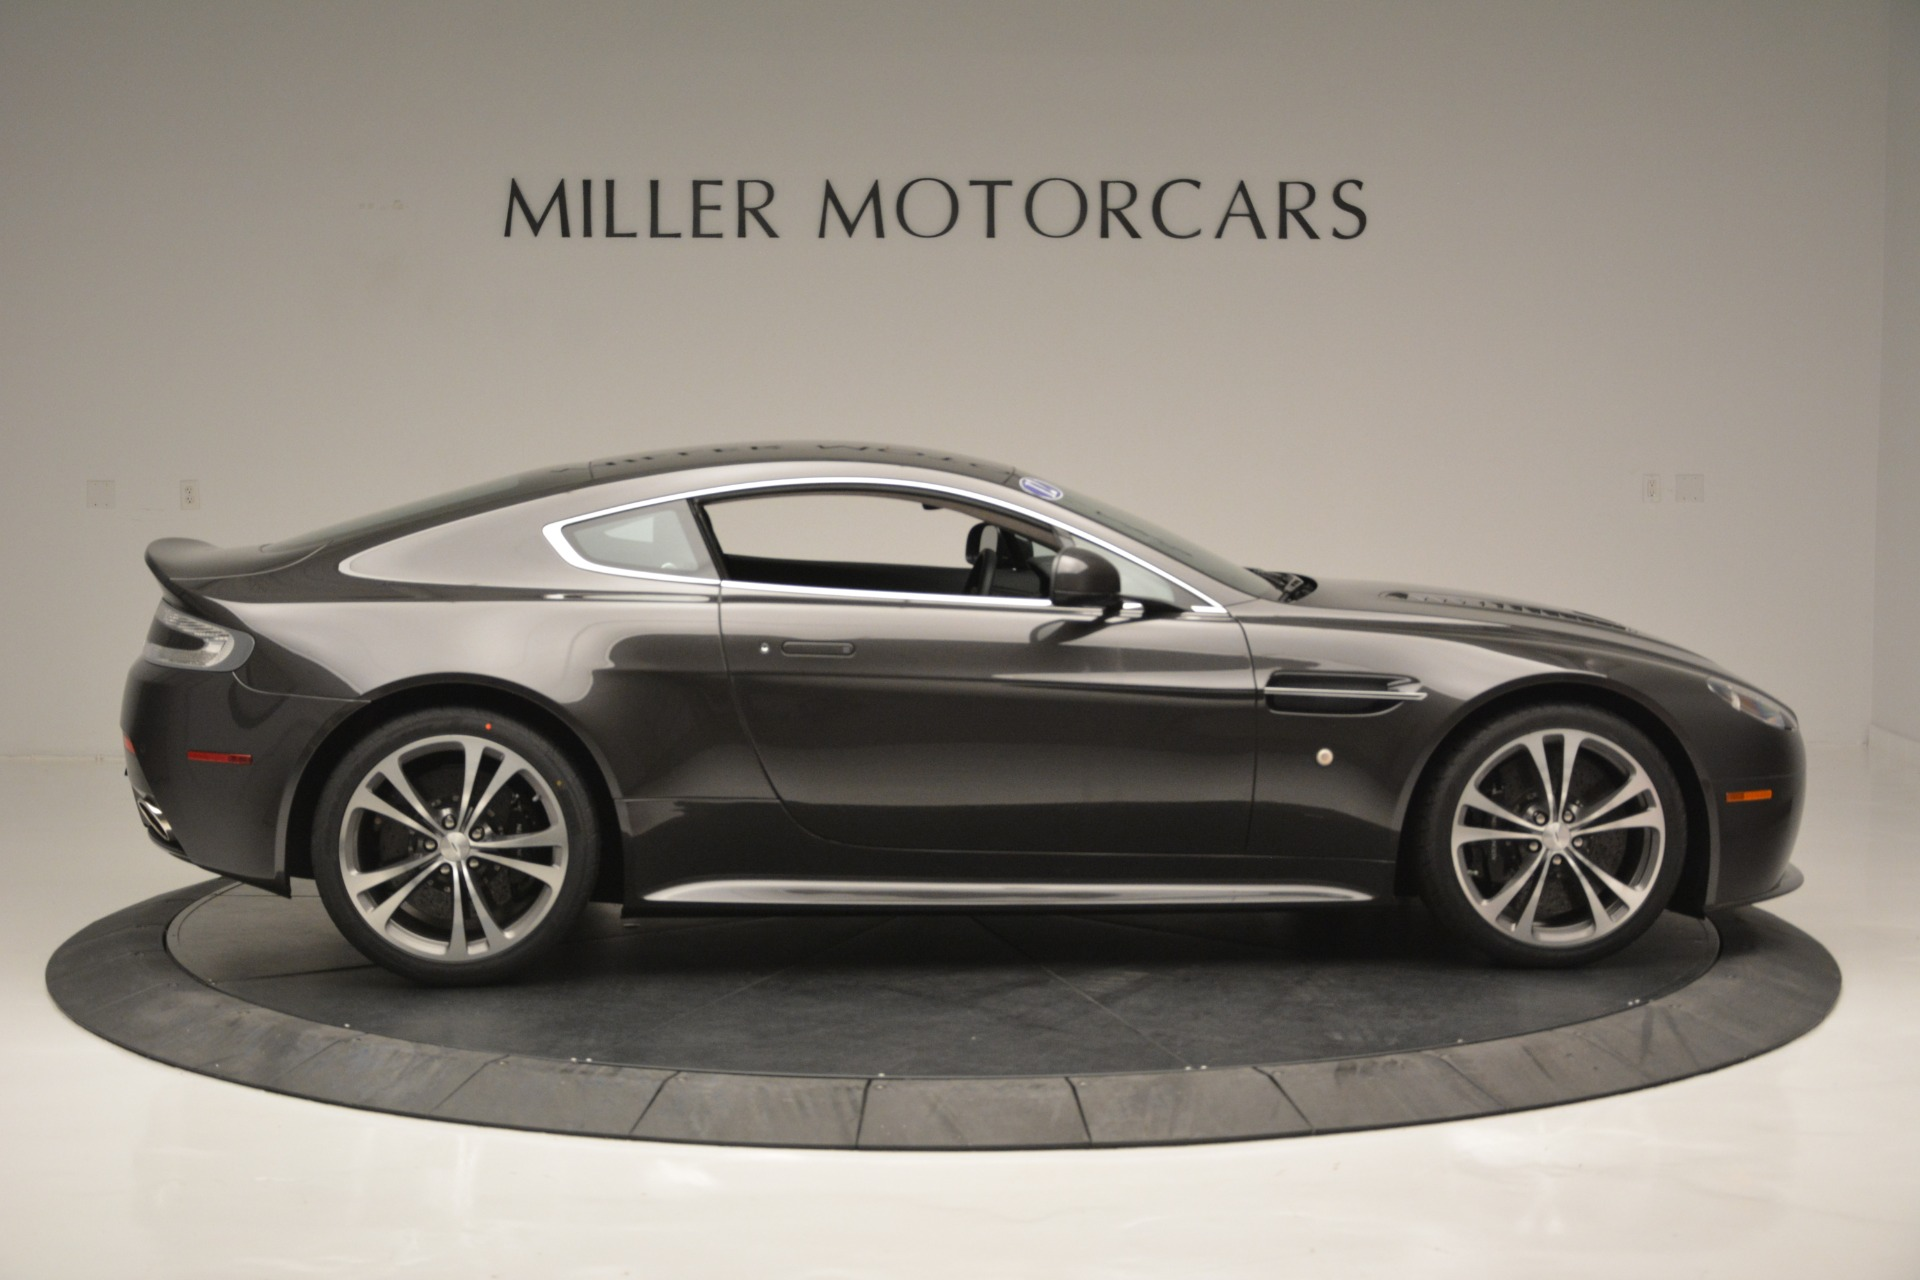 Used 2012 Aston Martin V12 Vantage Coupe For Sale In Westport, CT 2544_p9